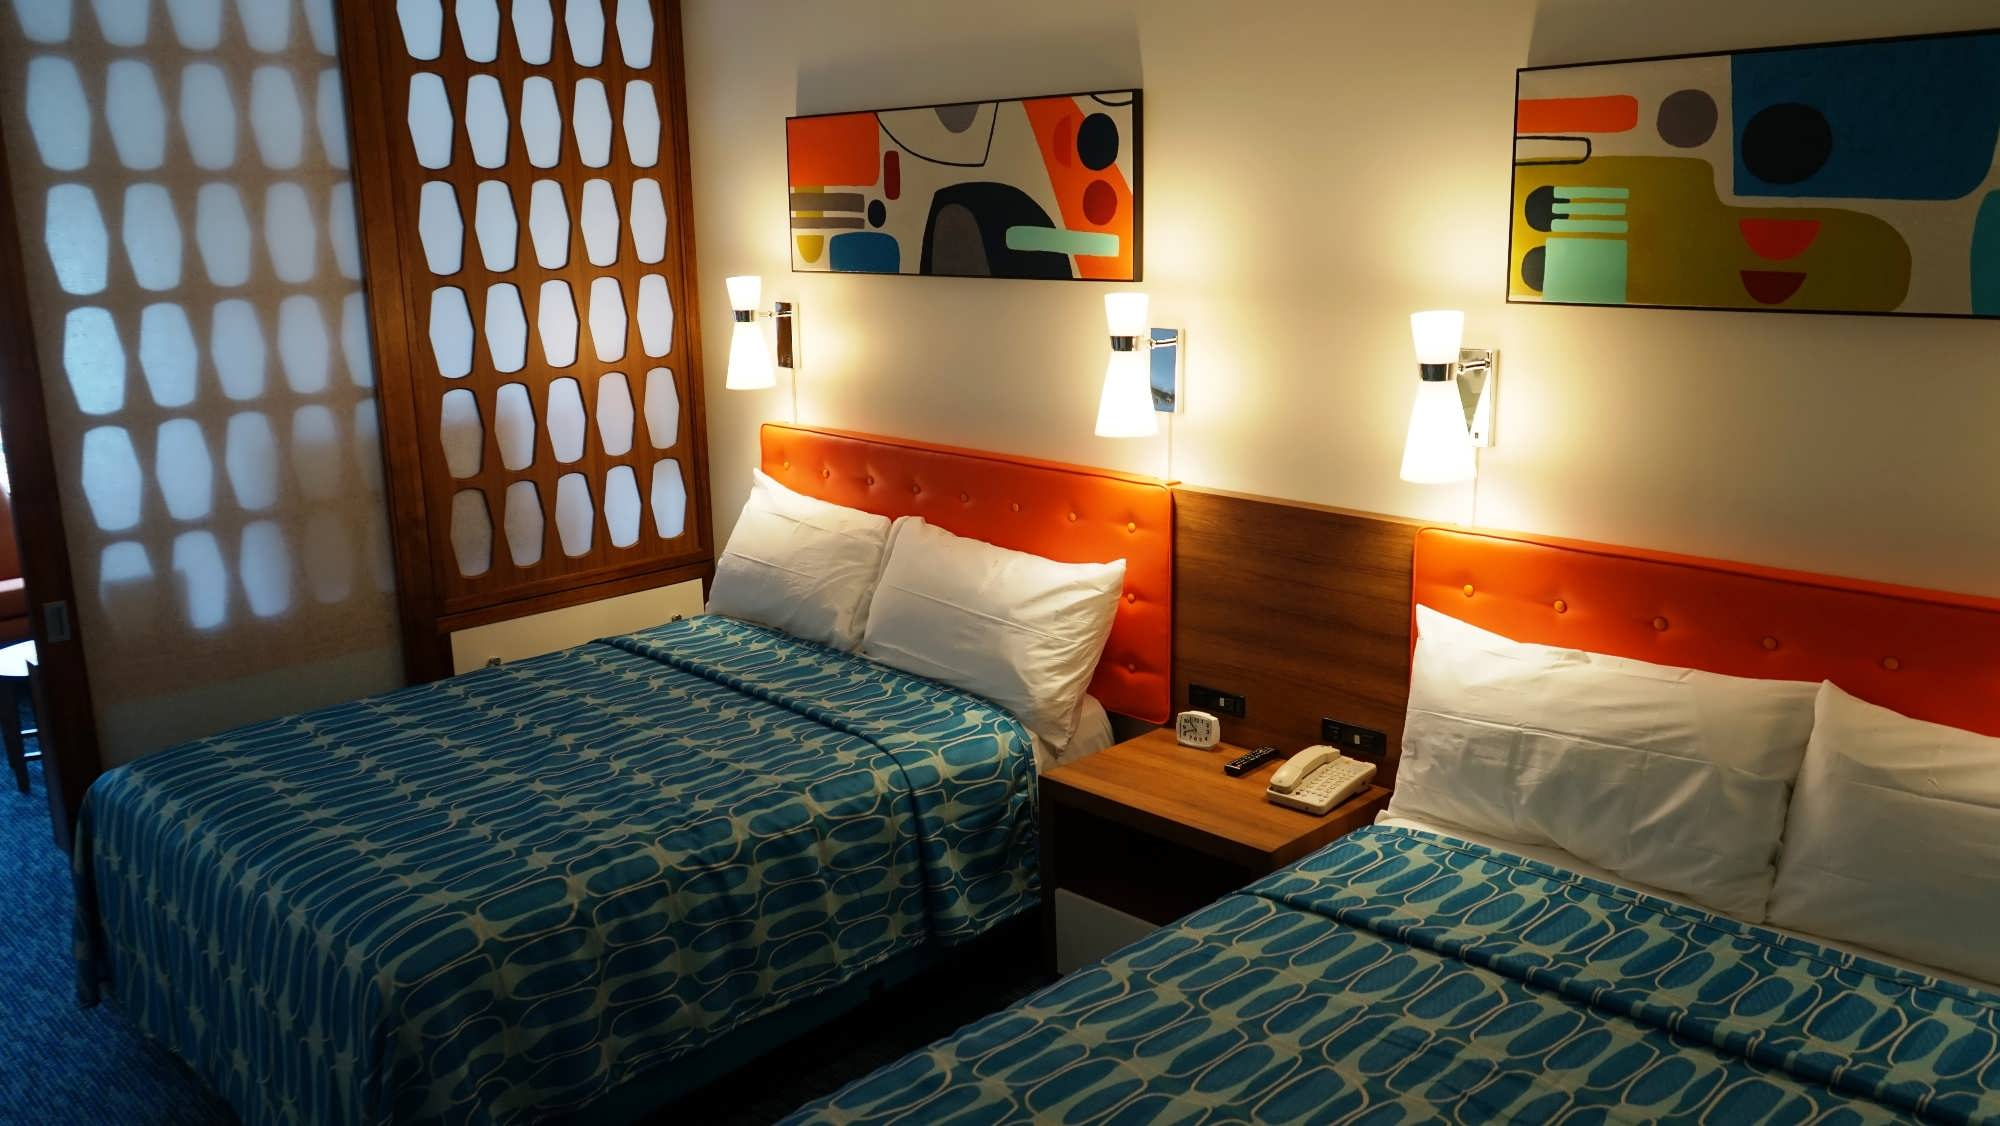 Two queen beds in the family suite at Cabana Bay Beach Resort, with retro-themed decor and partition